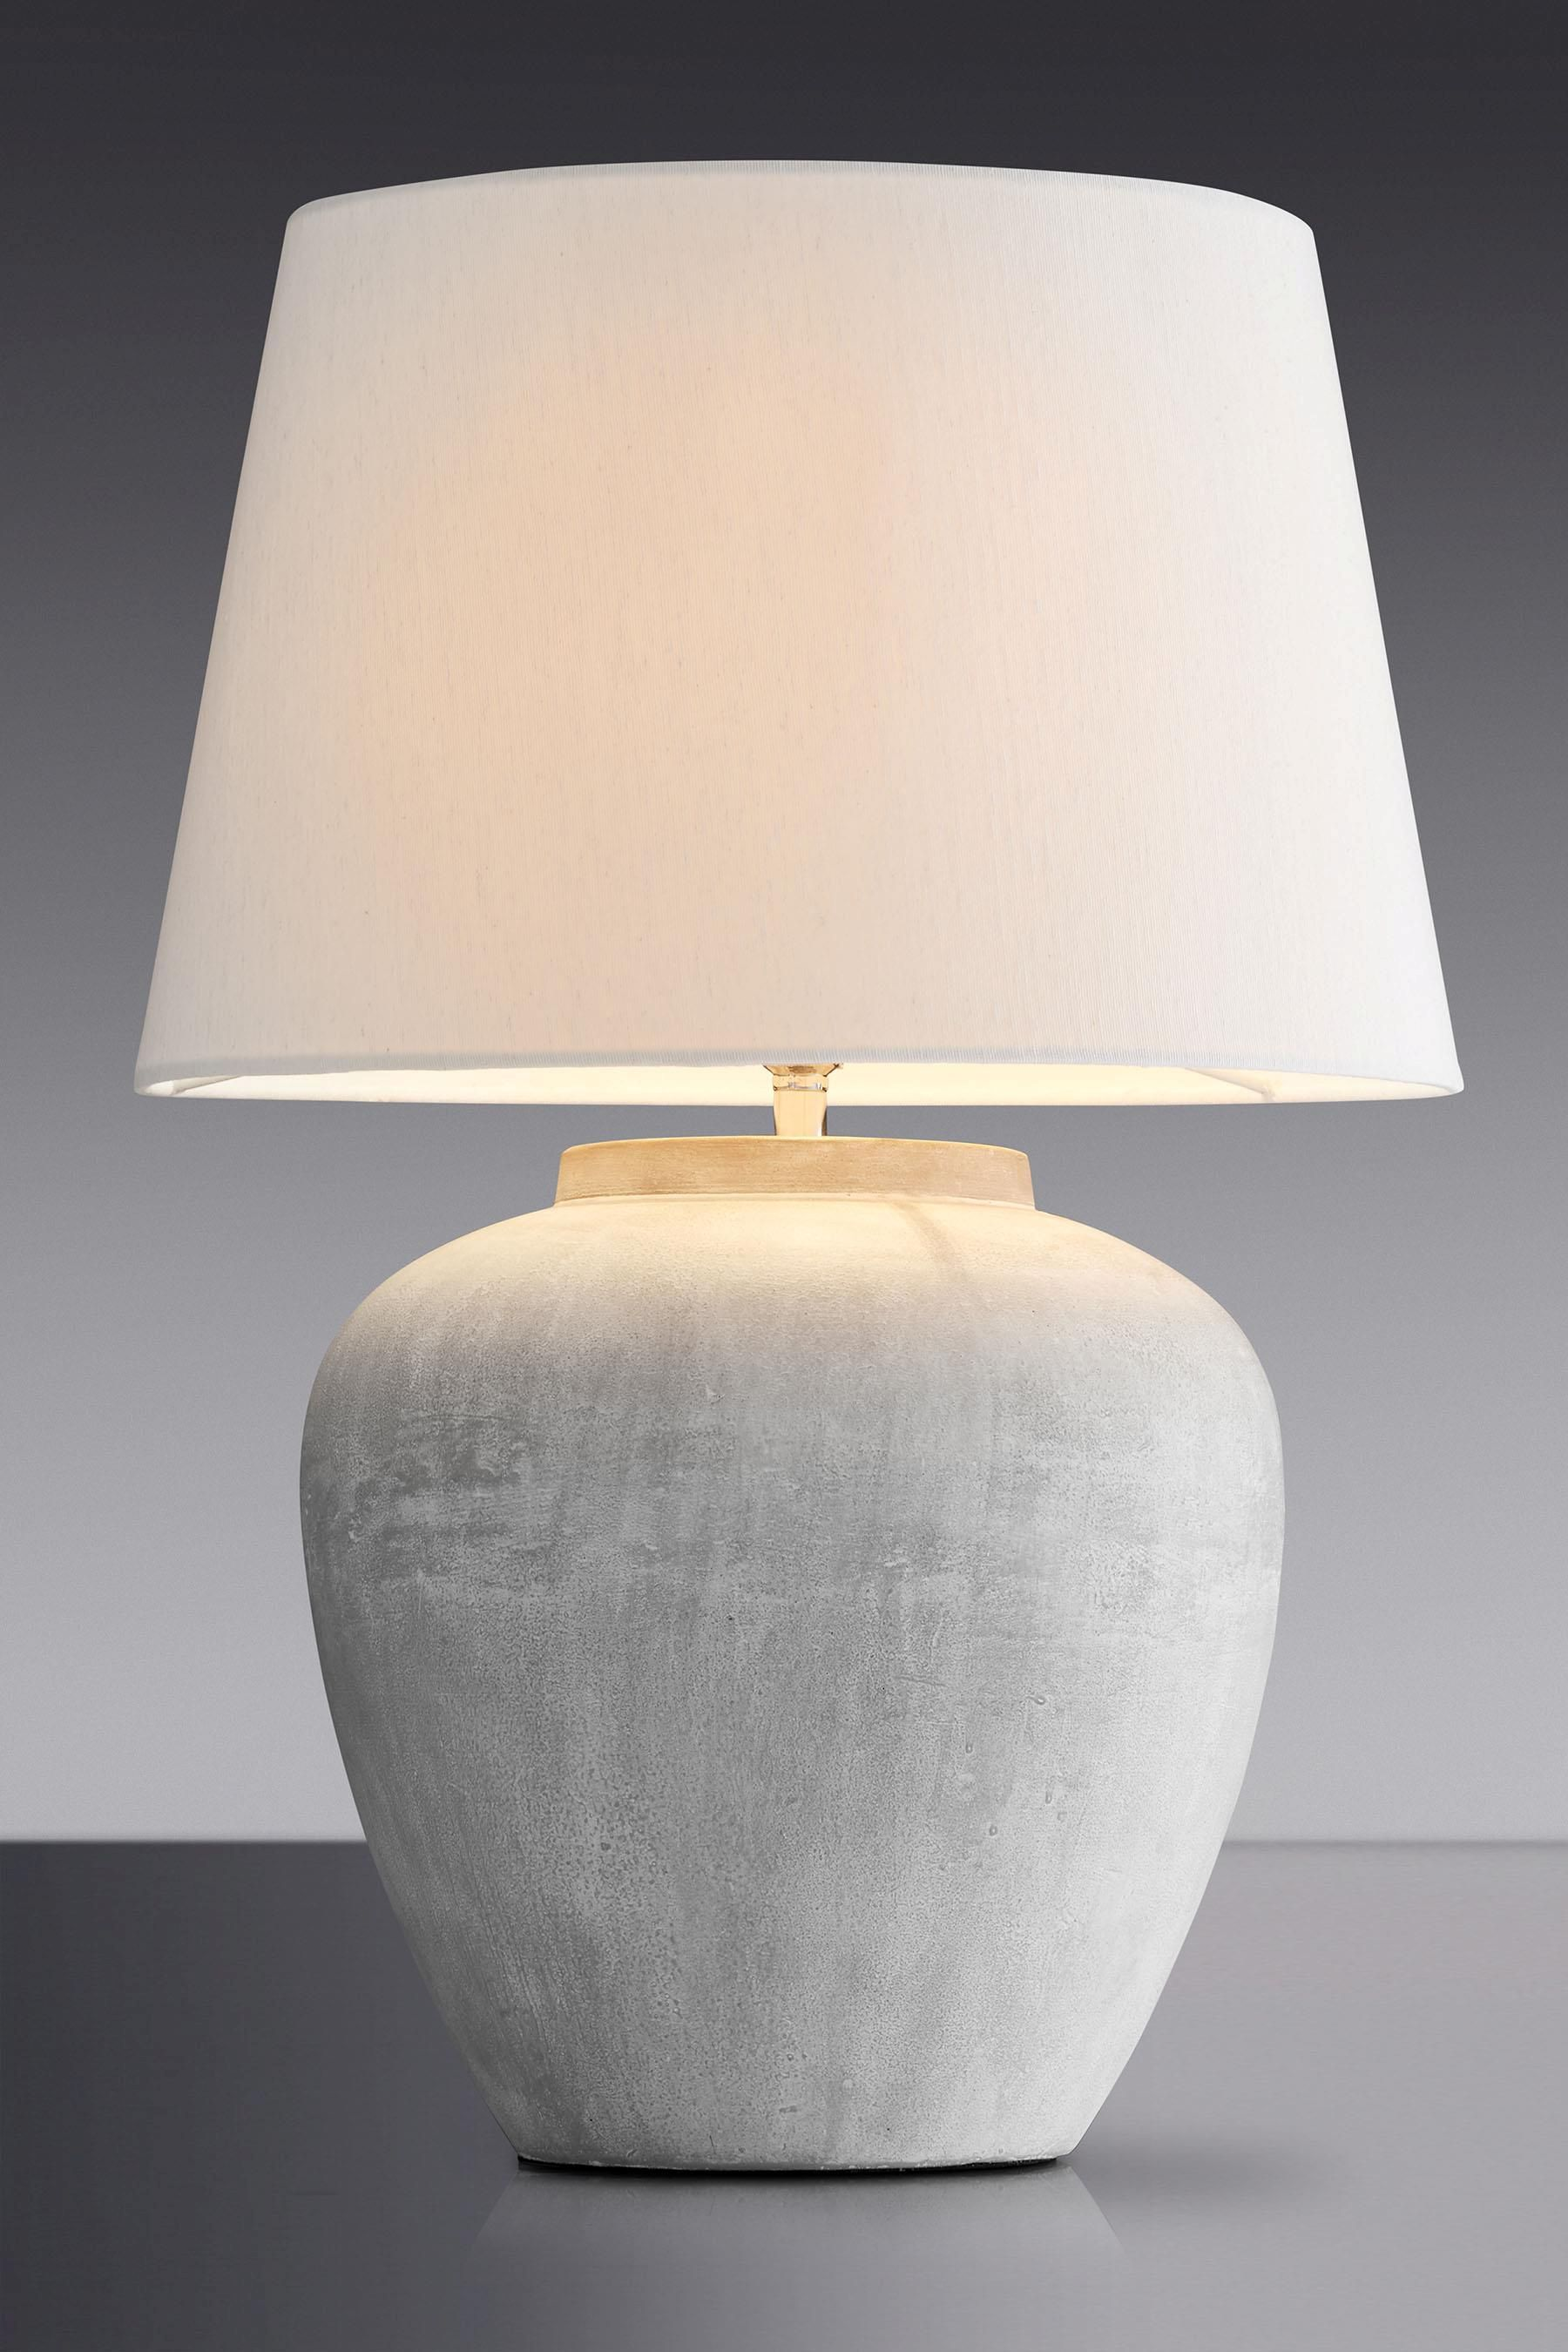 Buy Lydford Table Lamp From The Next Uk Online Shop Large Table Lamps Table Lamps Uk Table Lamps Living Room #reading #lamp #for #living #room